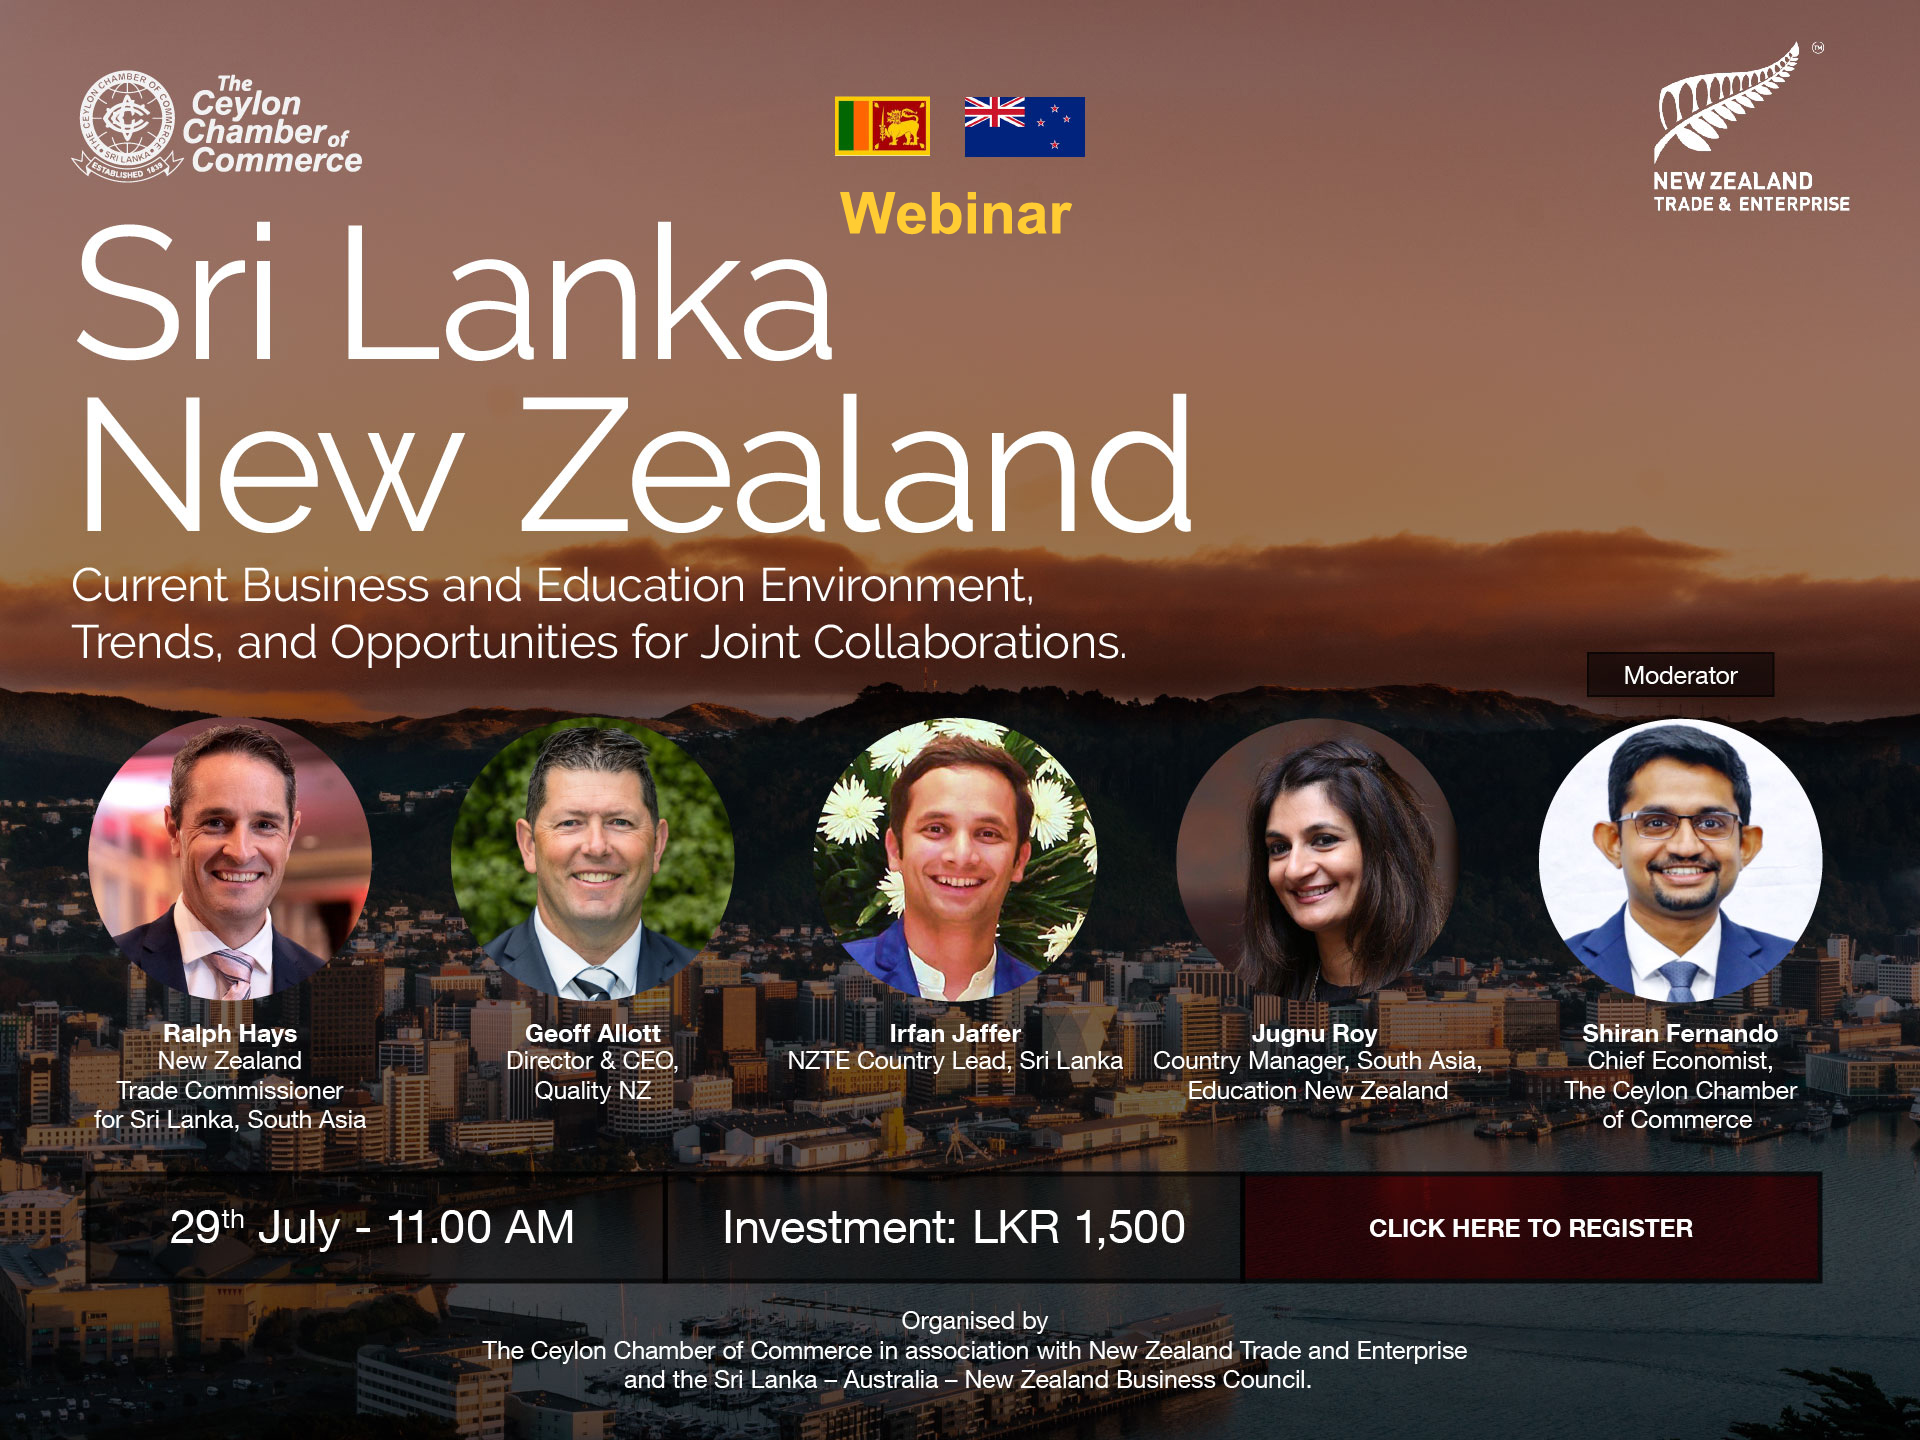 WEBINAR ON NEW ZEALAND - CURRENT ECONOMY, BUSINESS ENVIRONMENT AND OPPORTUNITIES FOR JOINT COLLABORATIONS